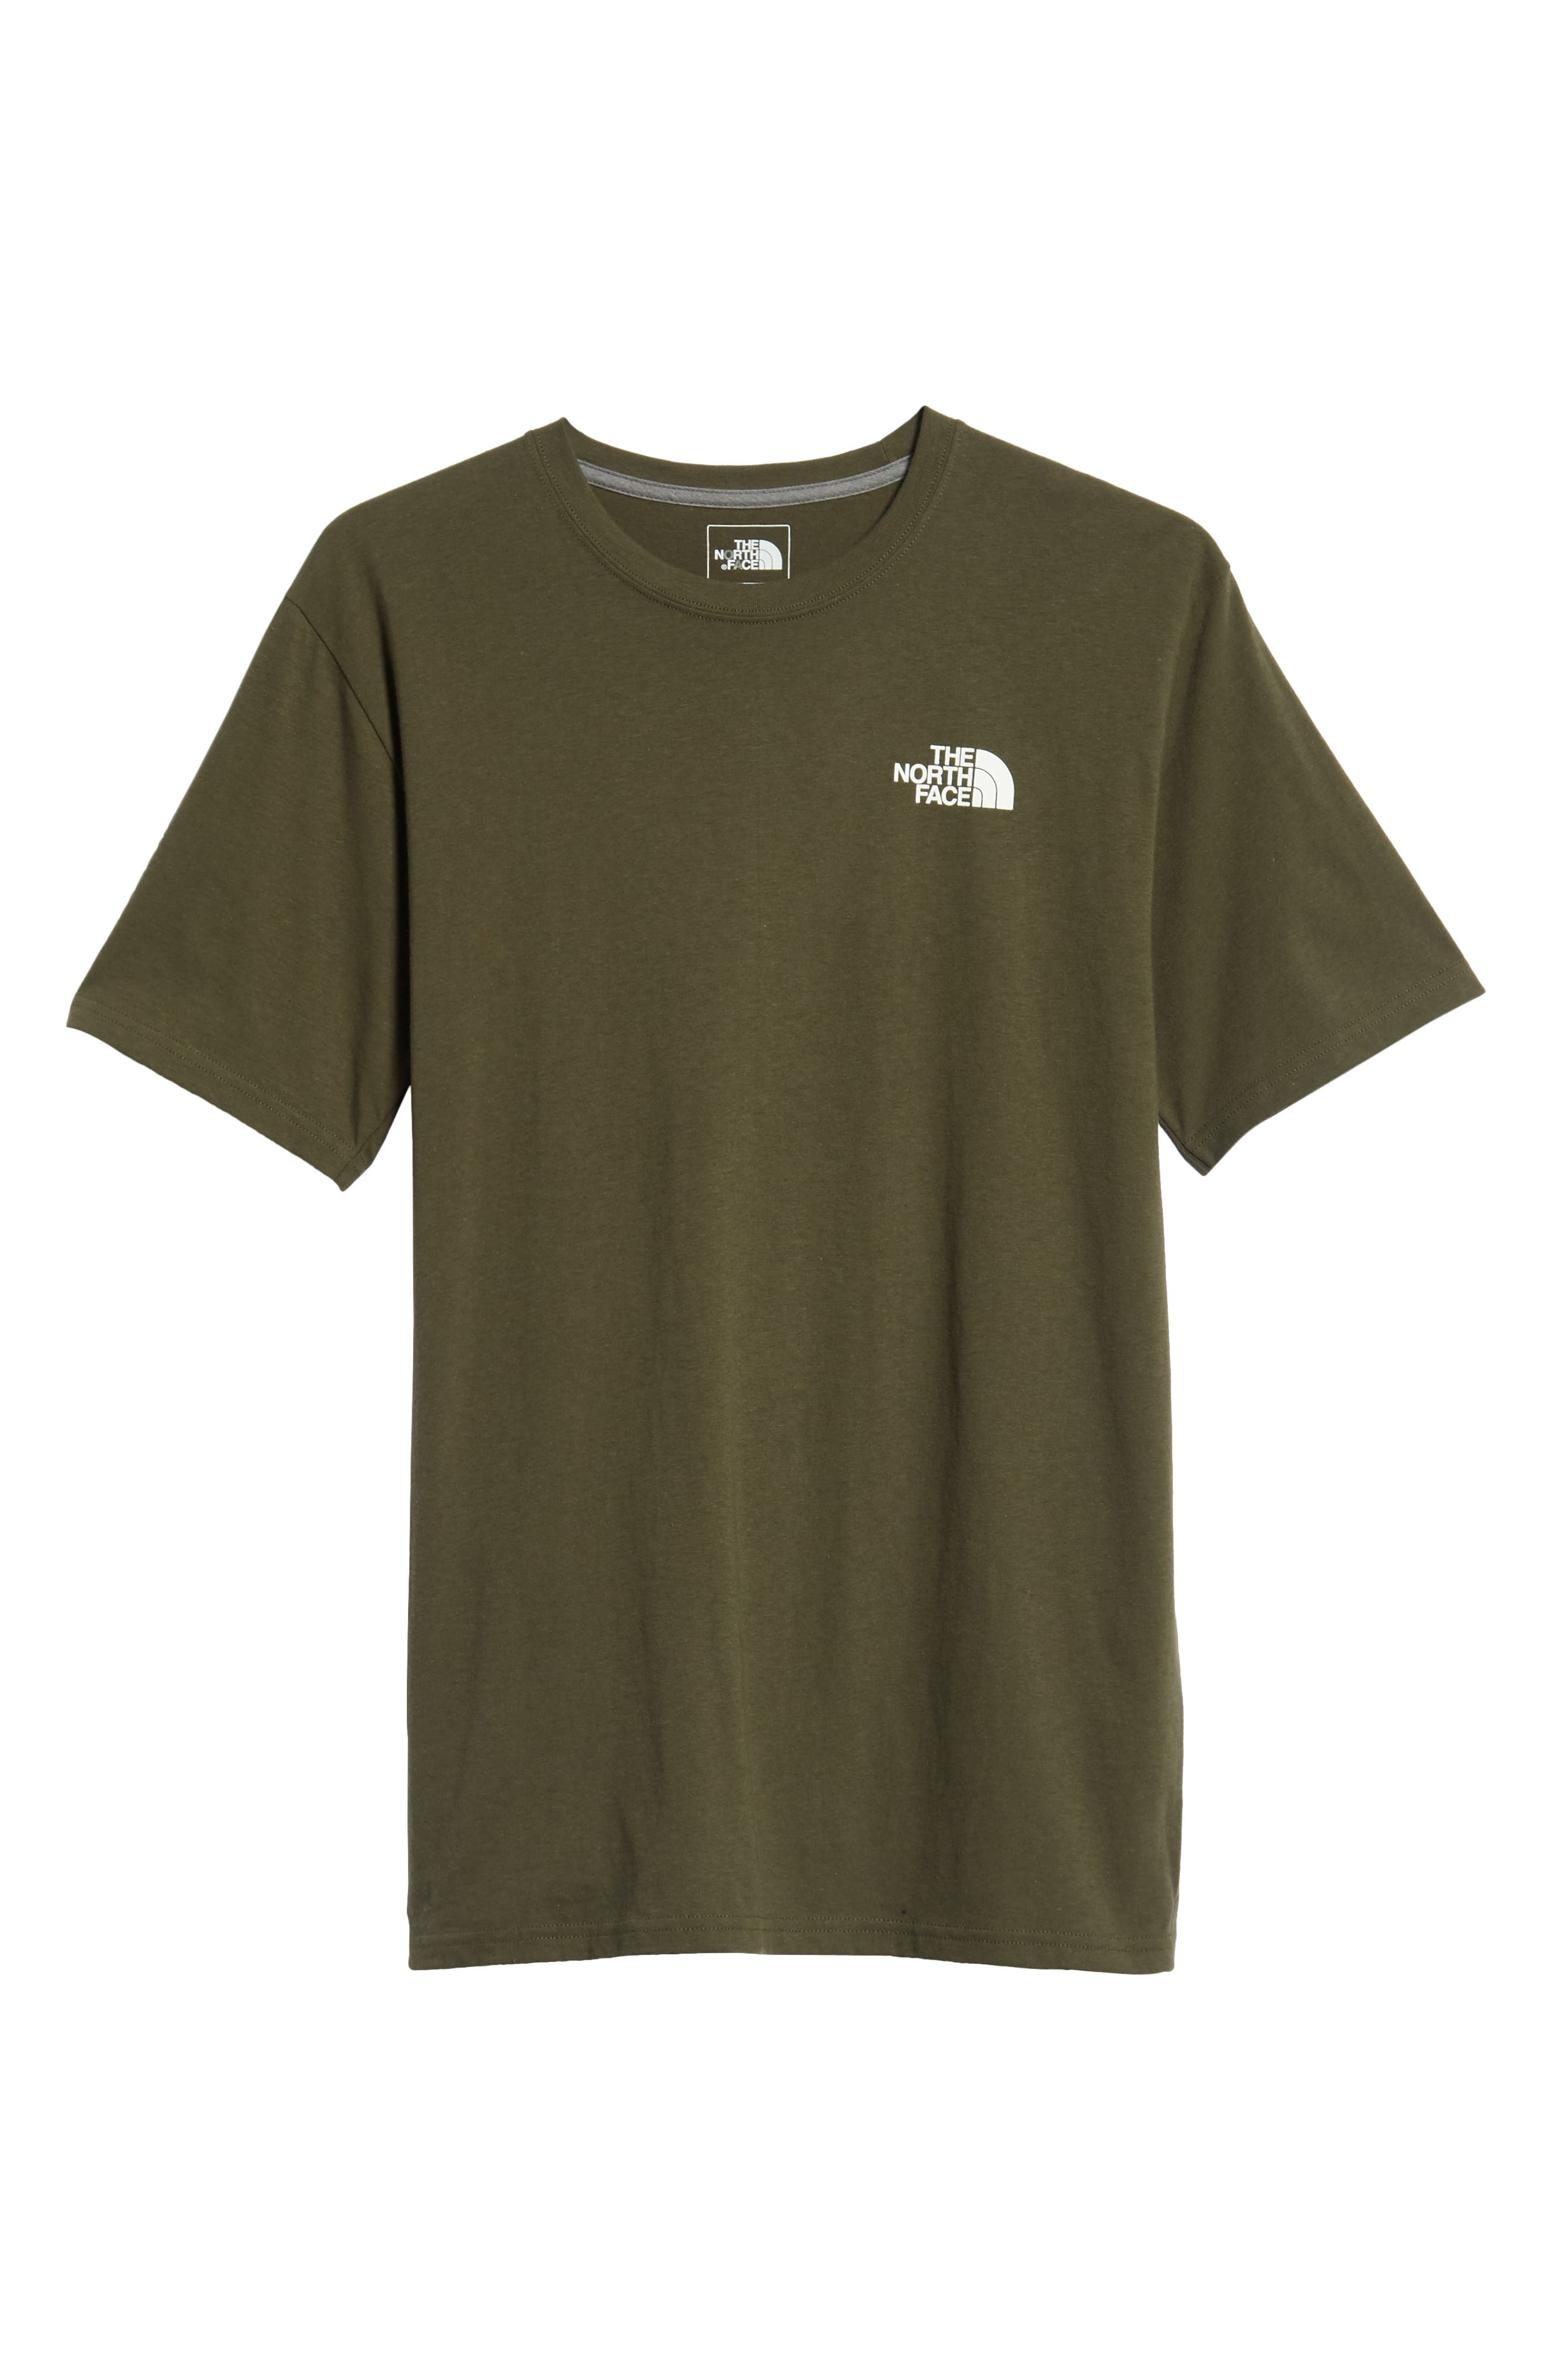 'Red Box' Graphic T-Shirt,                             Alternate thumbnail 6, color,                             TAUPE GREEN/ TNF BLACK